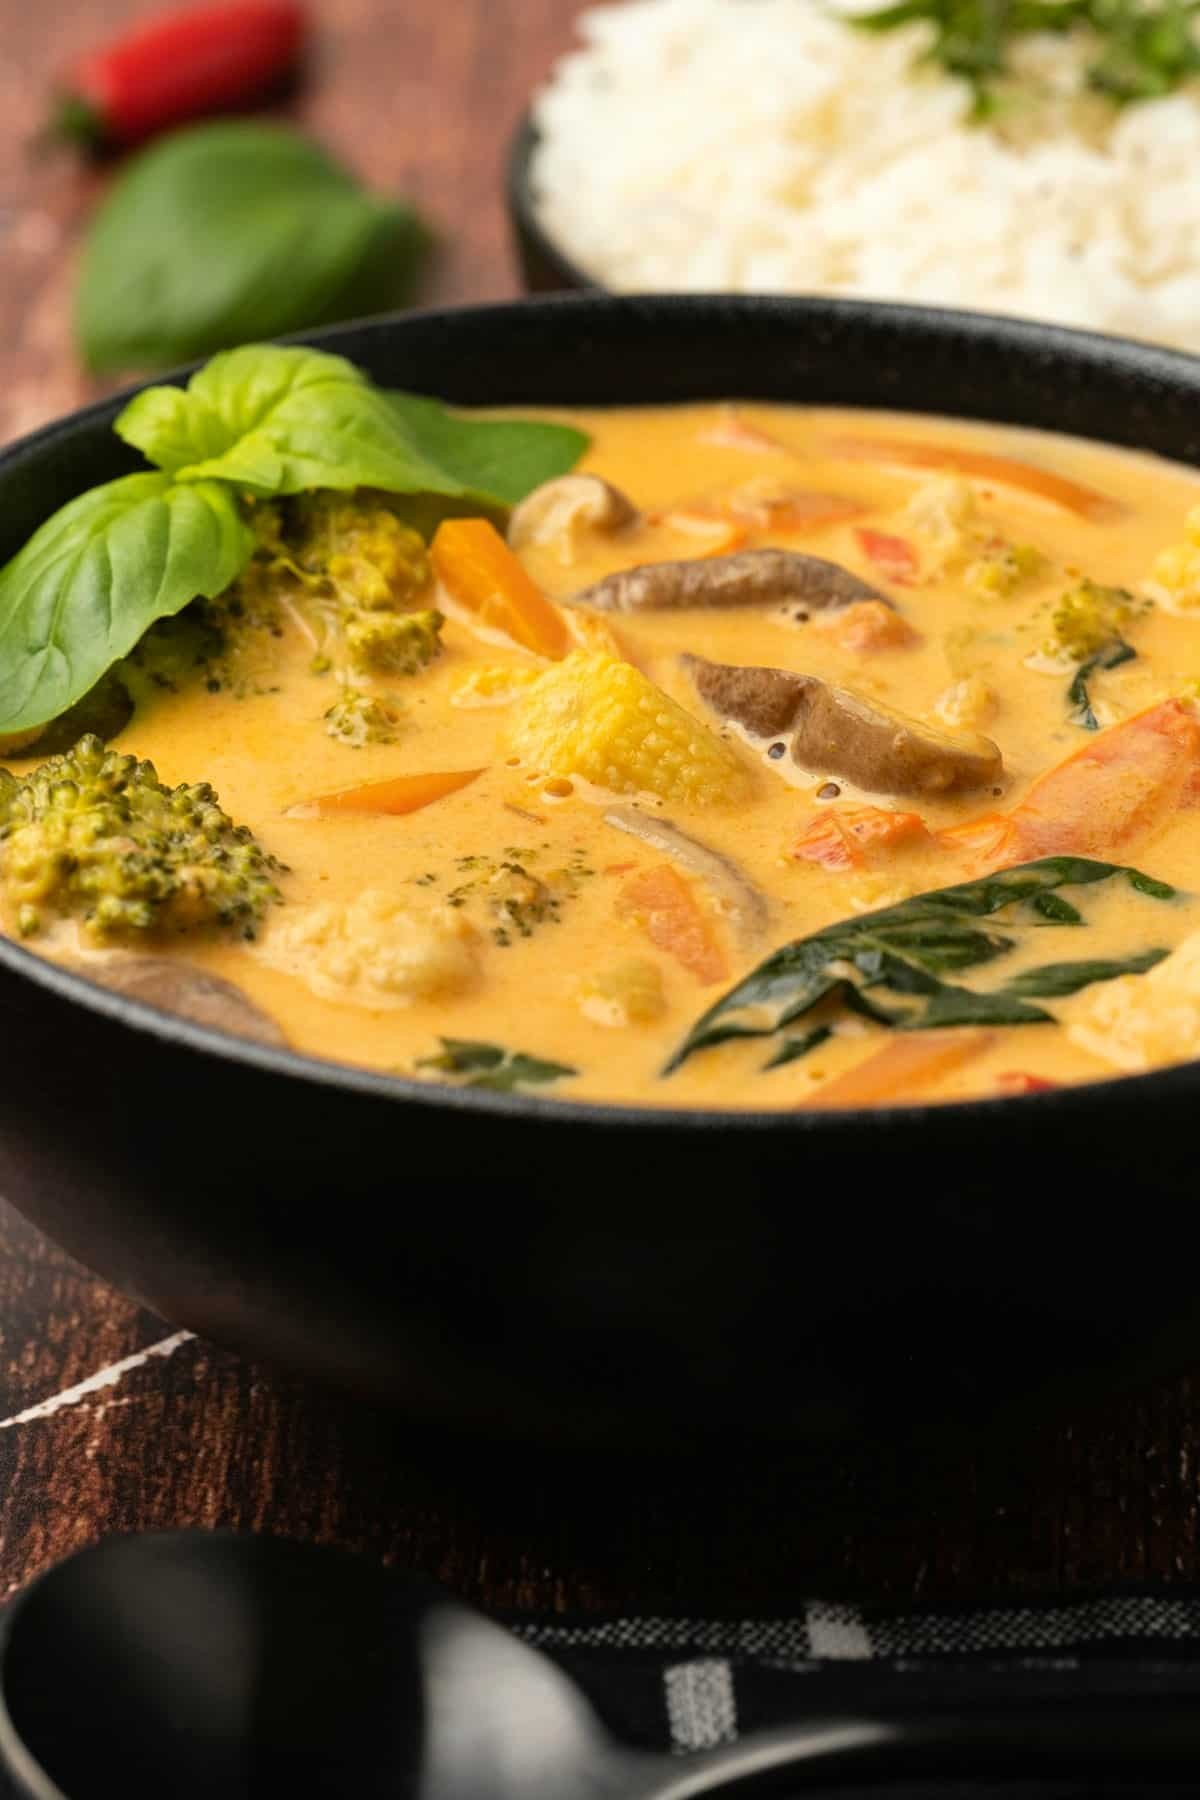 Thai red curry with fresh basil in a black bowl.